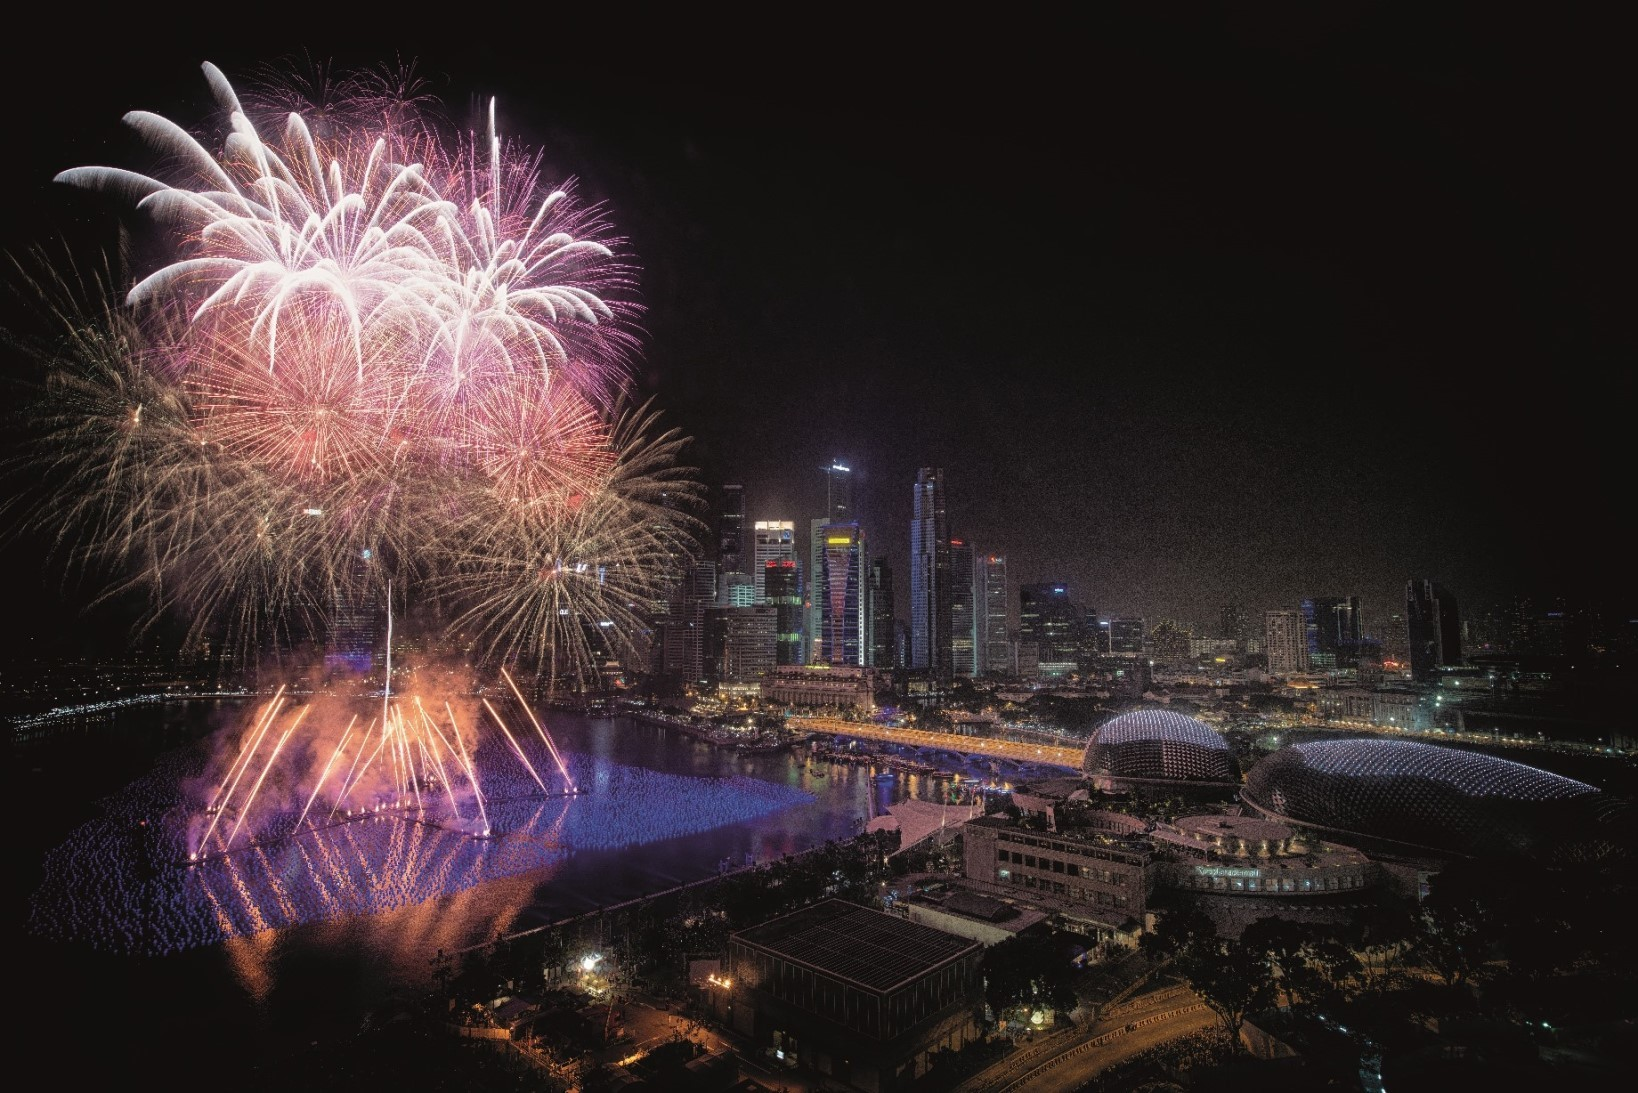 Best places to catch fireworks for free on National Day in Singapore